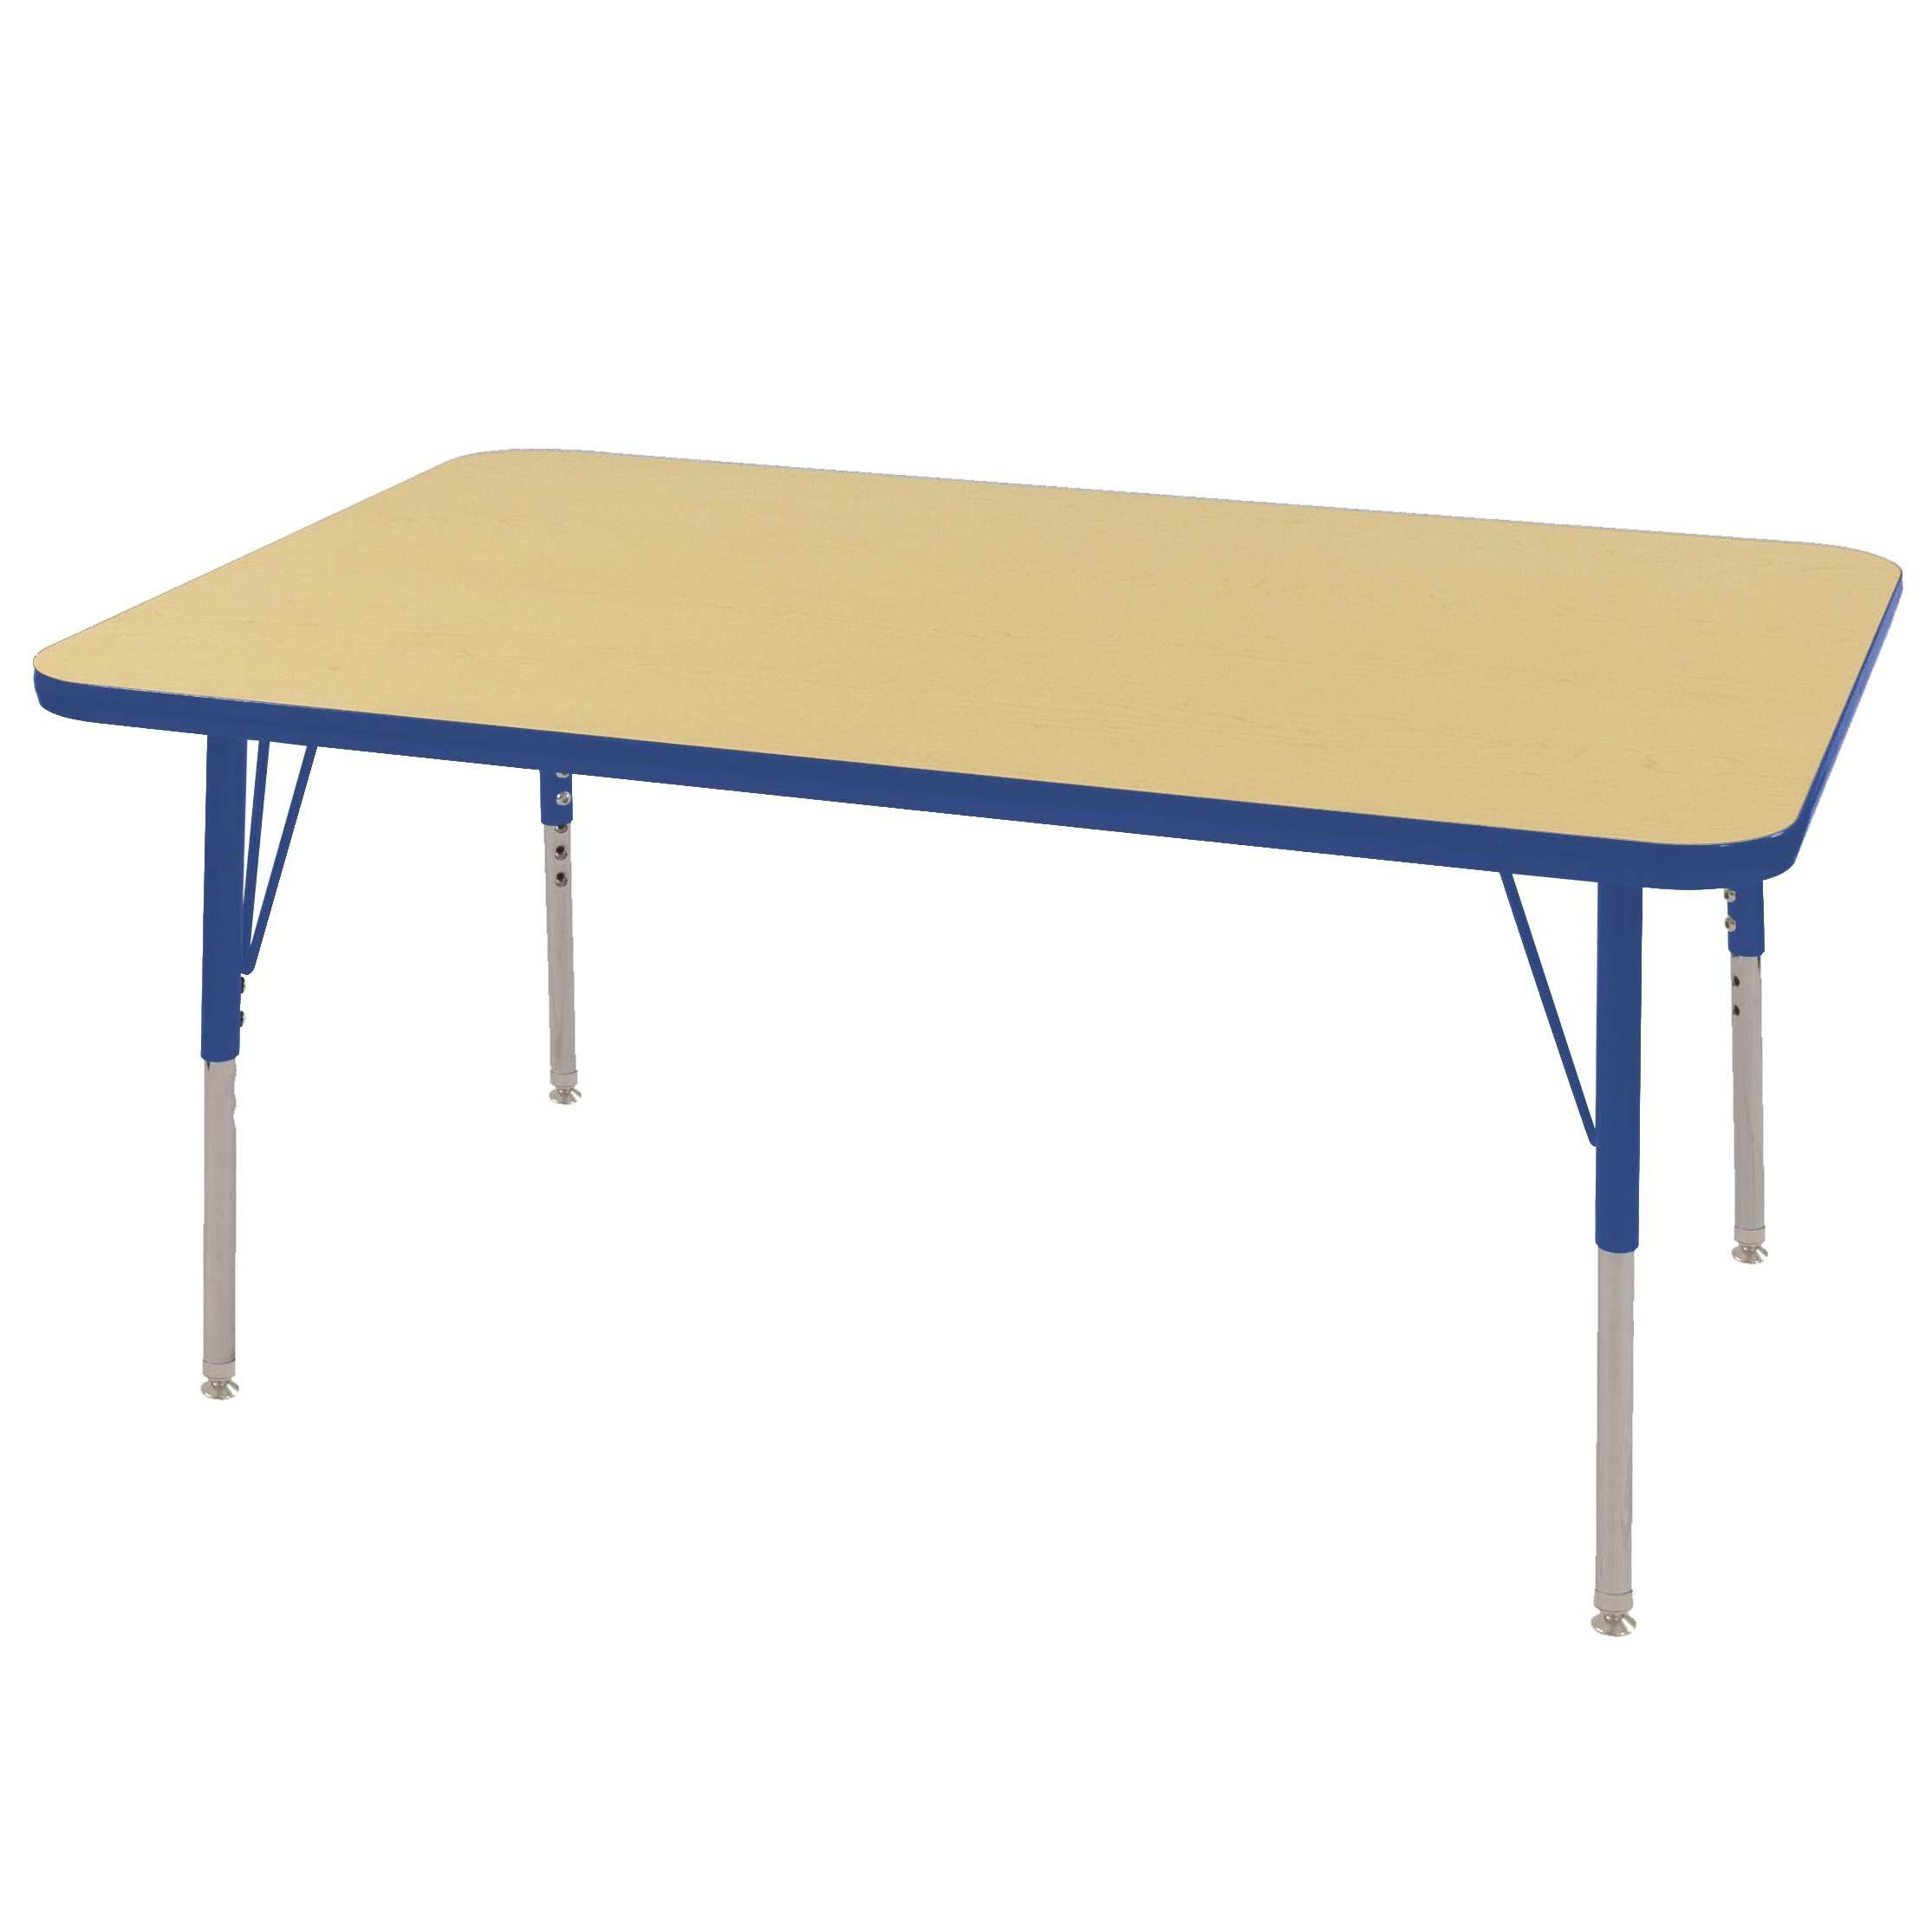 ECR4Kids Mesa T-Mold 30'' x 48'' Rectangular School Activity Table, Standard Legs w/ Swivel Glides, Adjustable Height 19-30 inch (Maple/Blue) by ECR4Kids (Image #7)